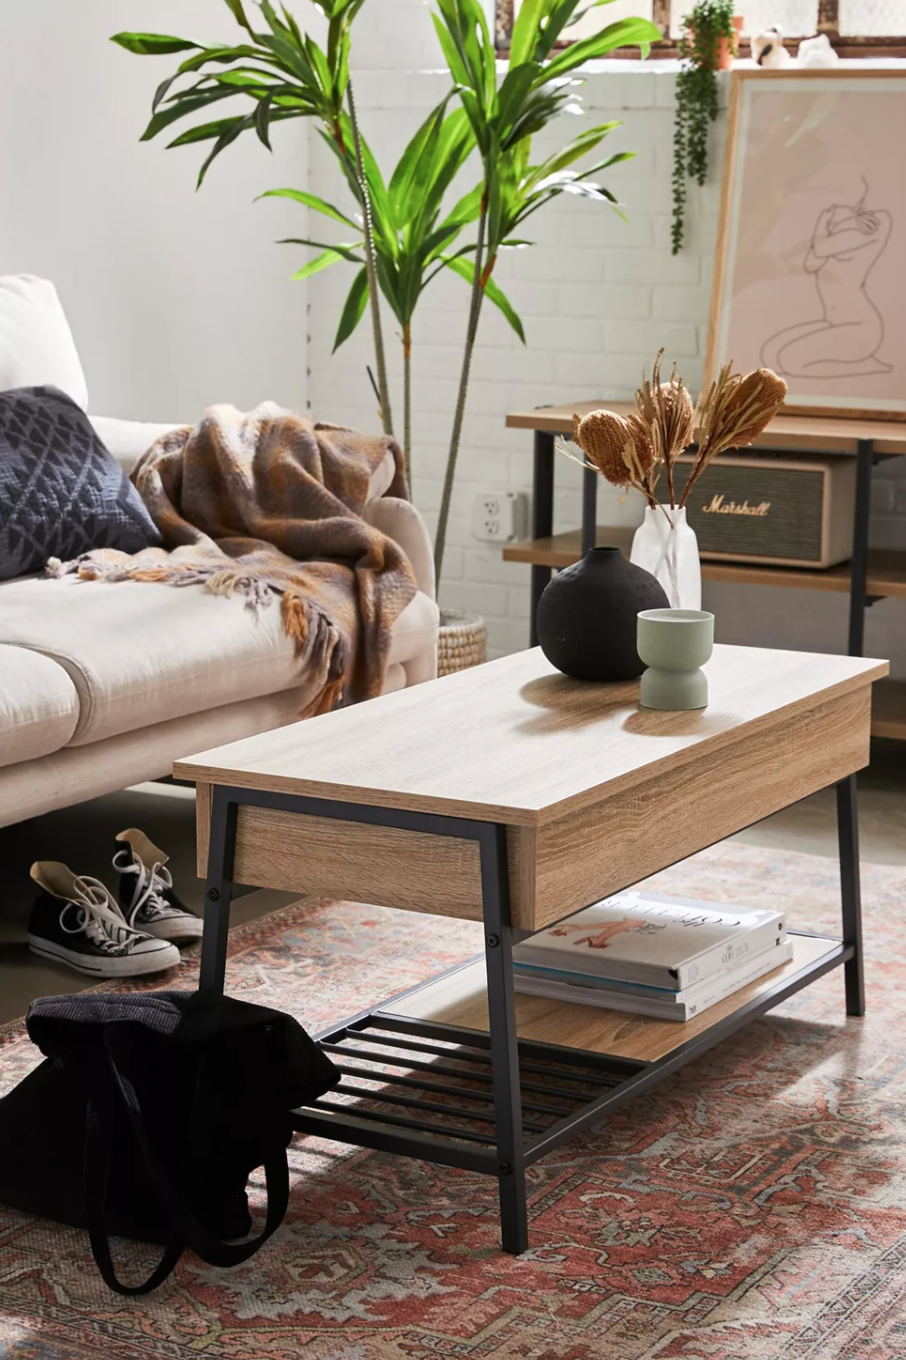 """<h2>Coffee Tables<br></h2><br><h3>Urban Outfitters Kirby Pop-Up Coffee Table</h3><br>Coffee tables may be <em>the</em> furniture benchmark for adulthood. For a piece that you'll be using every day, they are essential and therefore worth saving up to splurge on a quality one — like this top-rated wood style with a pop-up top and bonus interior storage.<br><br><em>Shop <a href=""""https://www.urbanoutfitters.com/shop/kirby-pop-up-coffee-table"""" rel=""""nofollow noopener"""" target=""""_blank"""" data-ylk=""""slk:Urban Outfitters"""" class=""""link rapid-noclick-resp""""><strong>Urban Outfitters</strong></a></em><br><br><strong>Urban Outfitters</strong> Kirby Pop-Up Coffee Table, $, available at <a href=""""https://go.skimresources.com/?id=30283X879131&url=https%3A%2F%2Fwww.urbanoutfitters.com%2Fshop%2Fkirby-pop-up-coffee-table"""" rel=""""nofollow noopener"""" target=""""_blank"""" data-ylk=""""slk:Urban Outfitters"""" class=""""link rapid-noclick-resp"""">Urban Outfitters</a>"""